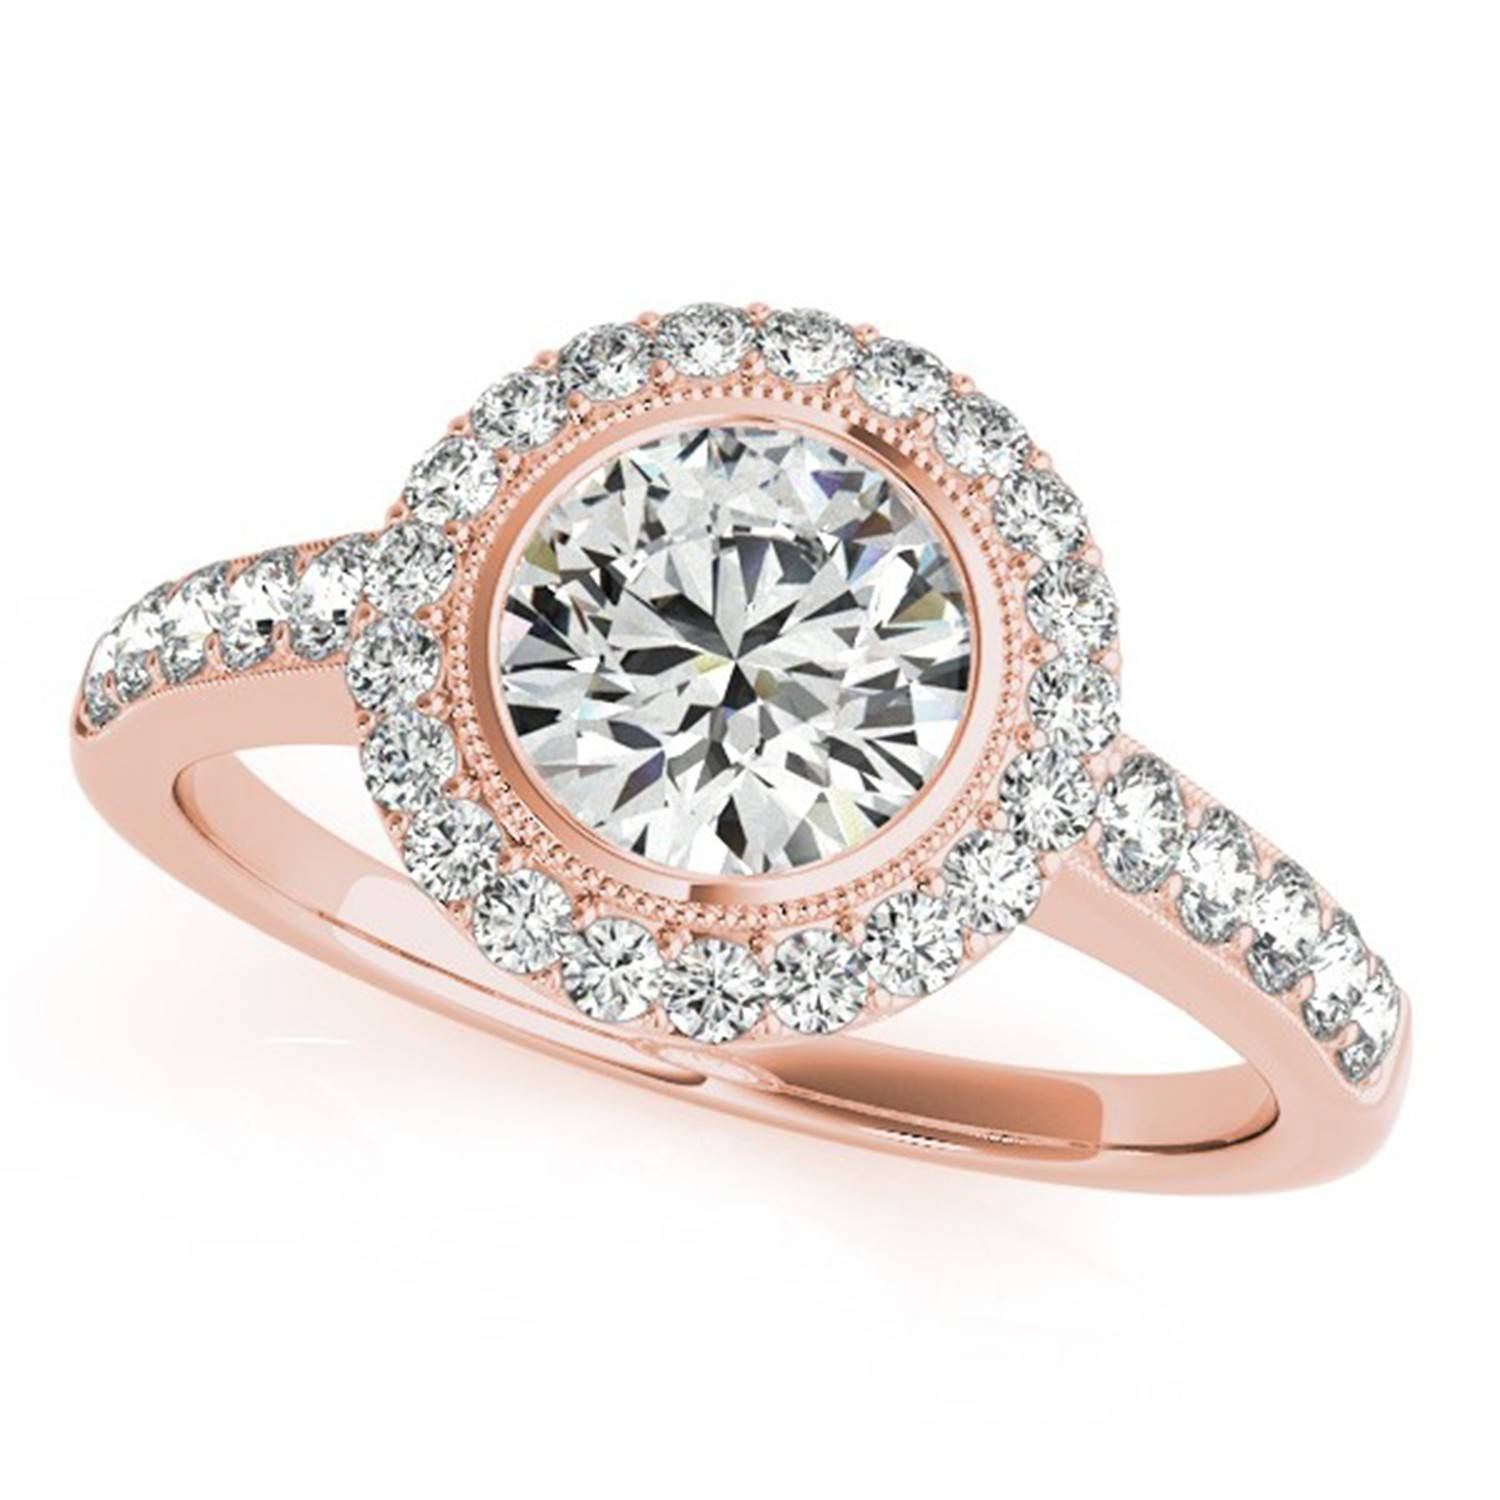 Halo Engagement Ring Settings – New Wedding Ideas Trends Intended For Vintage Halo Engagement Ring Settings (View 13 of 15)